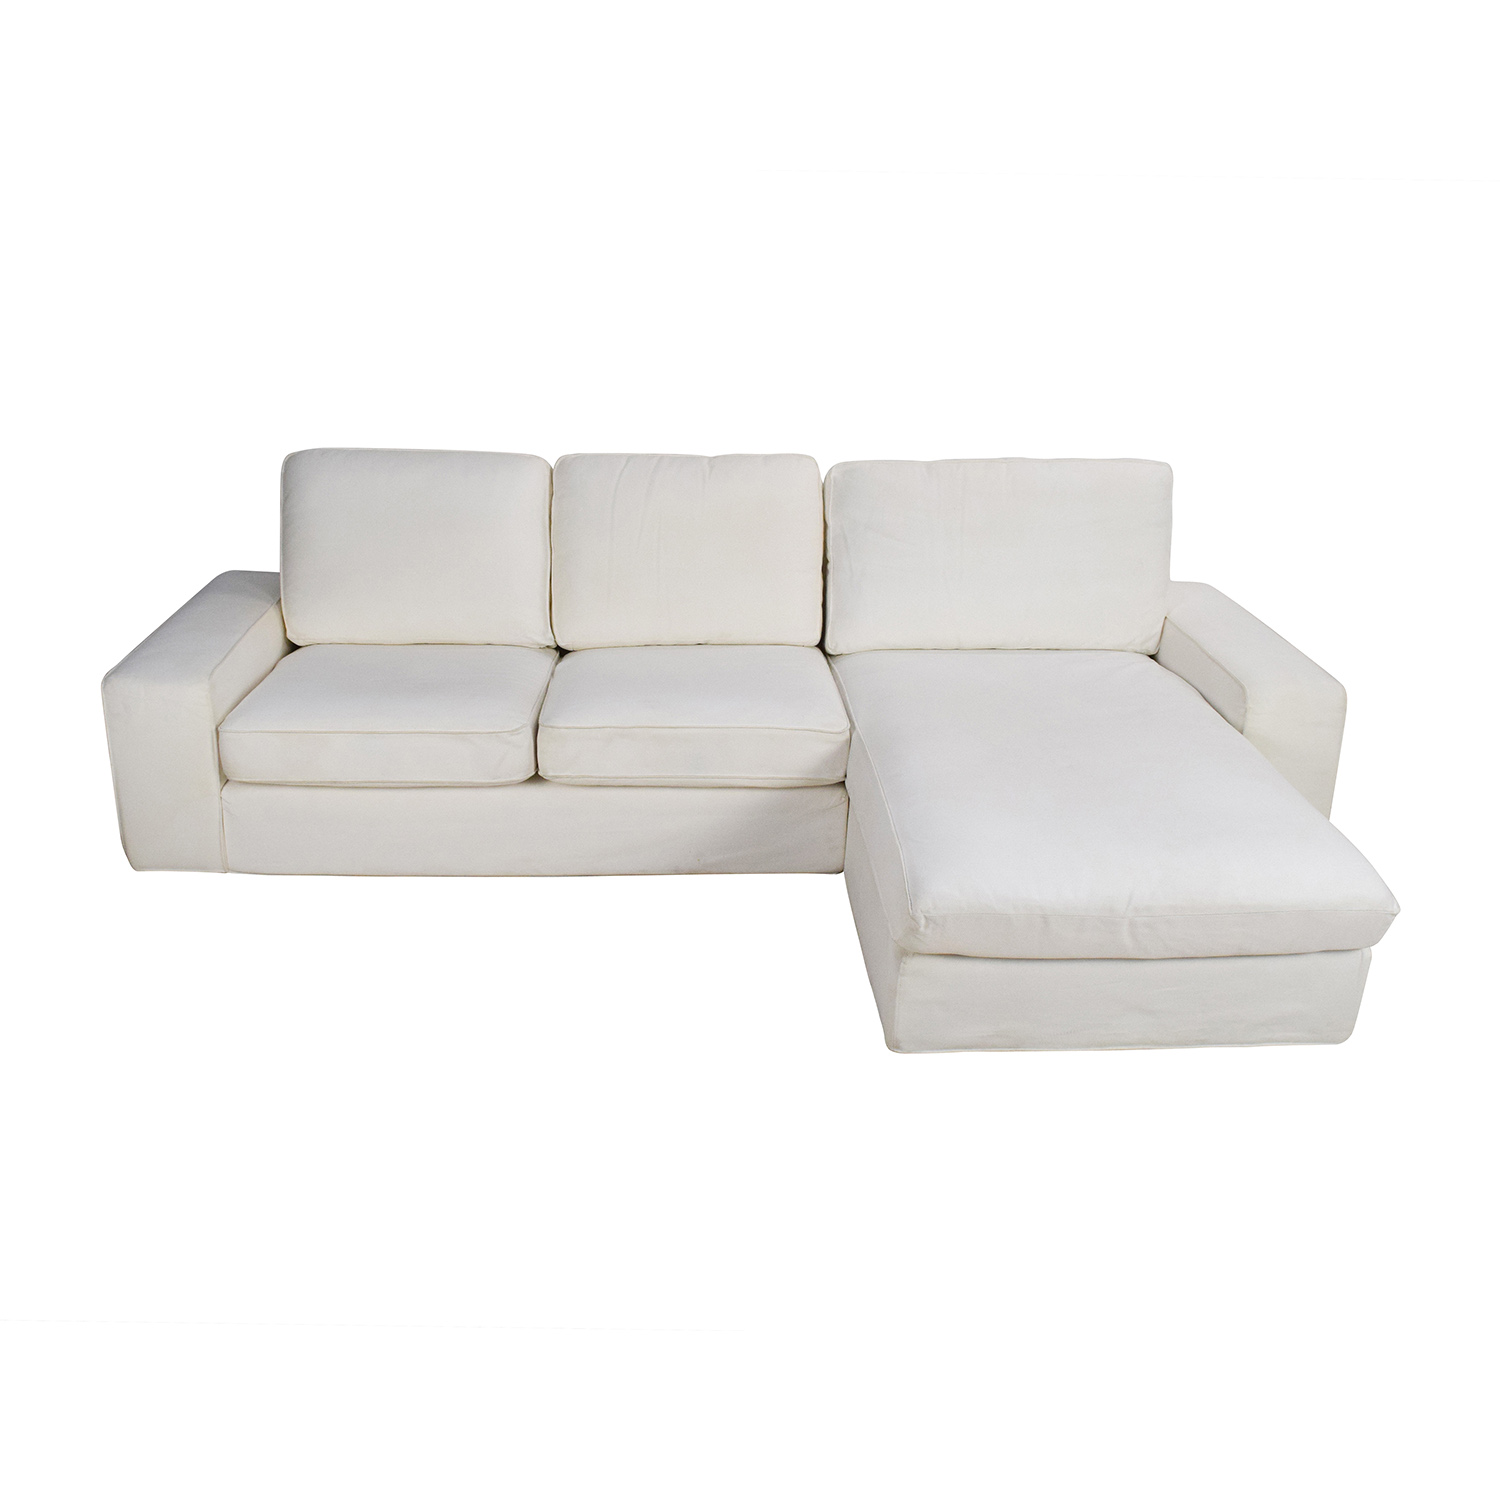 Second hand chaise longue sofa bed sofa the honoroak for Sofas con chaise longue